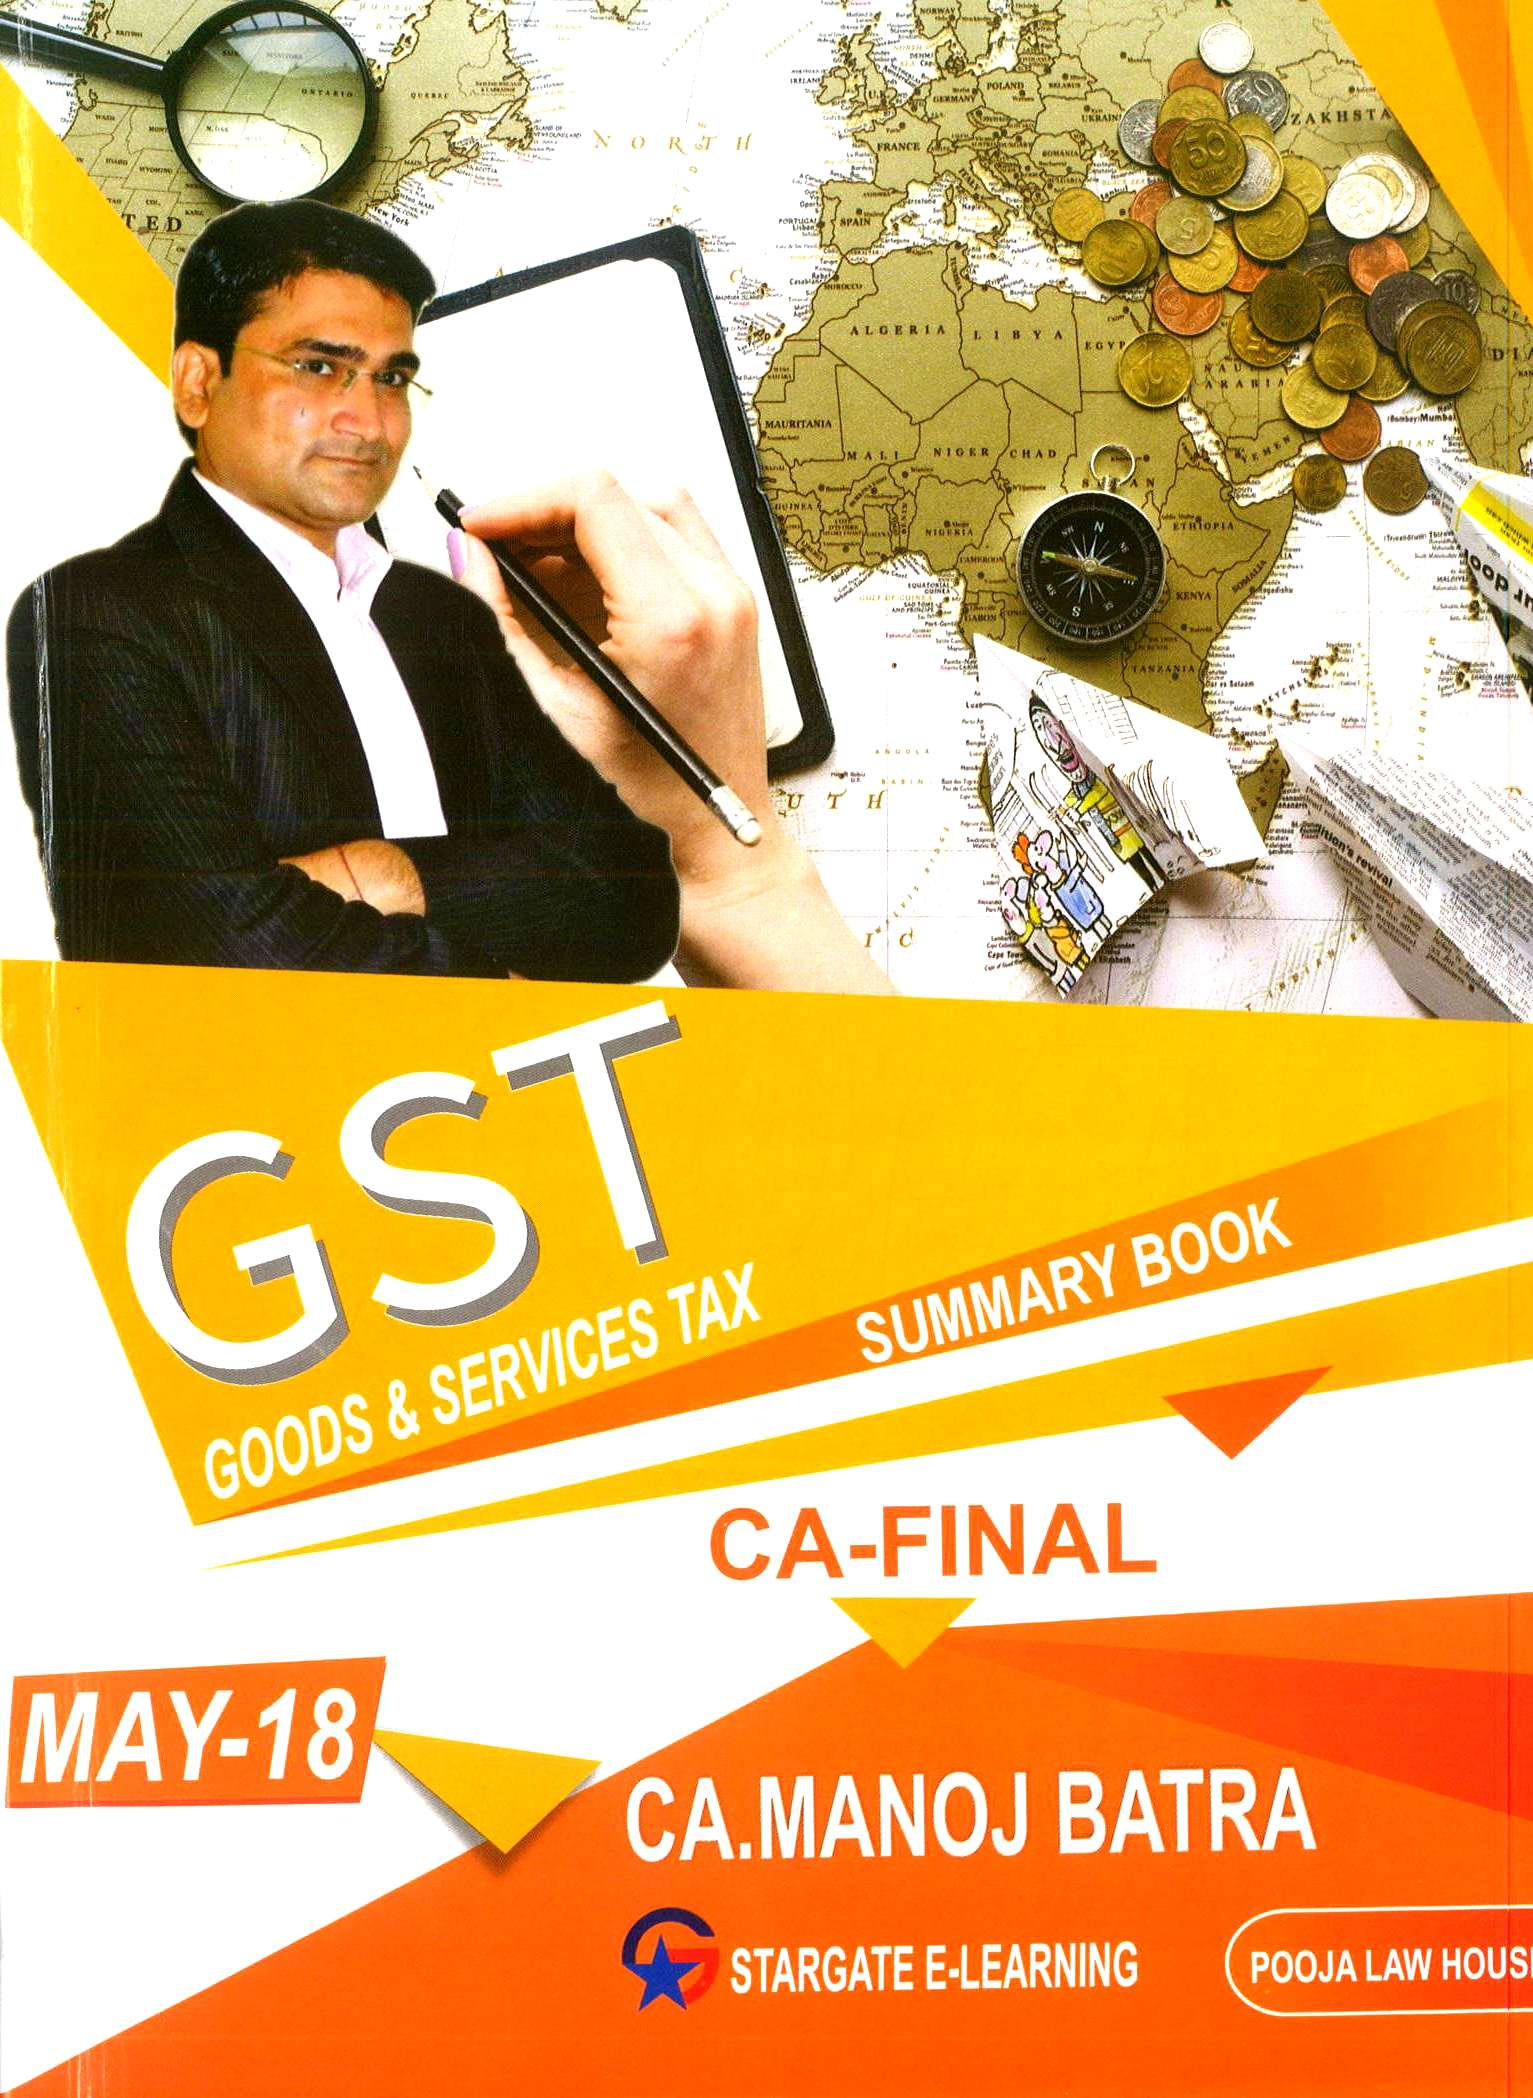 Pooja Law House CA Final (Goods And Services Tax ) GST Summary Book By Manoj Batra Applicable for May 2018 Exam